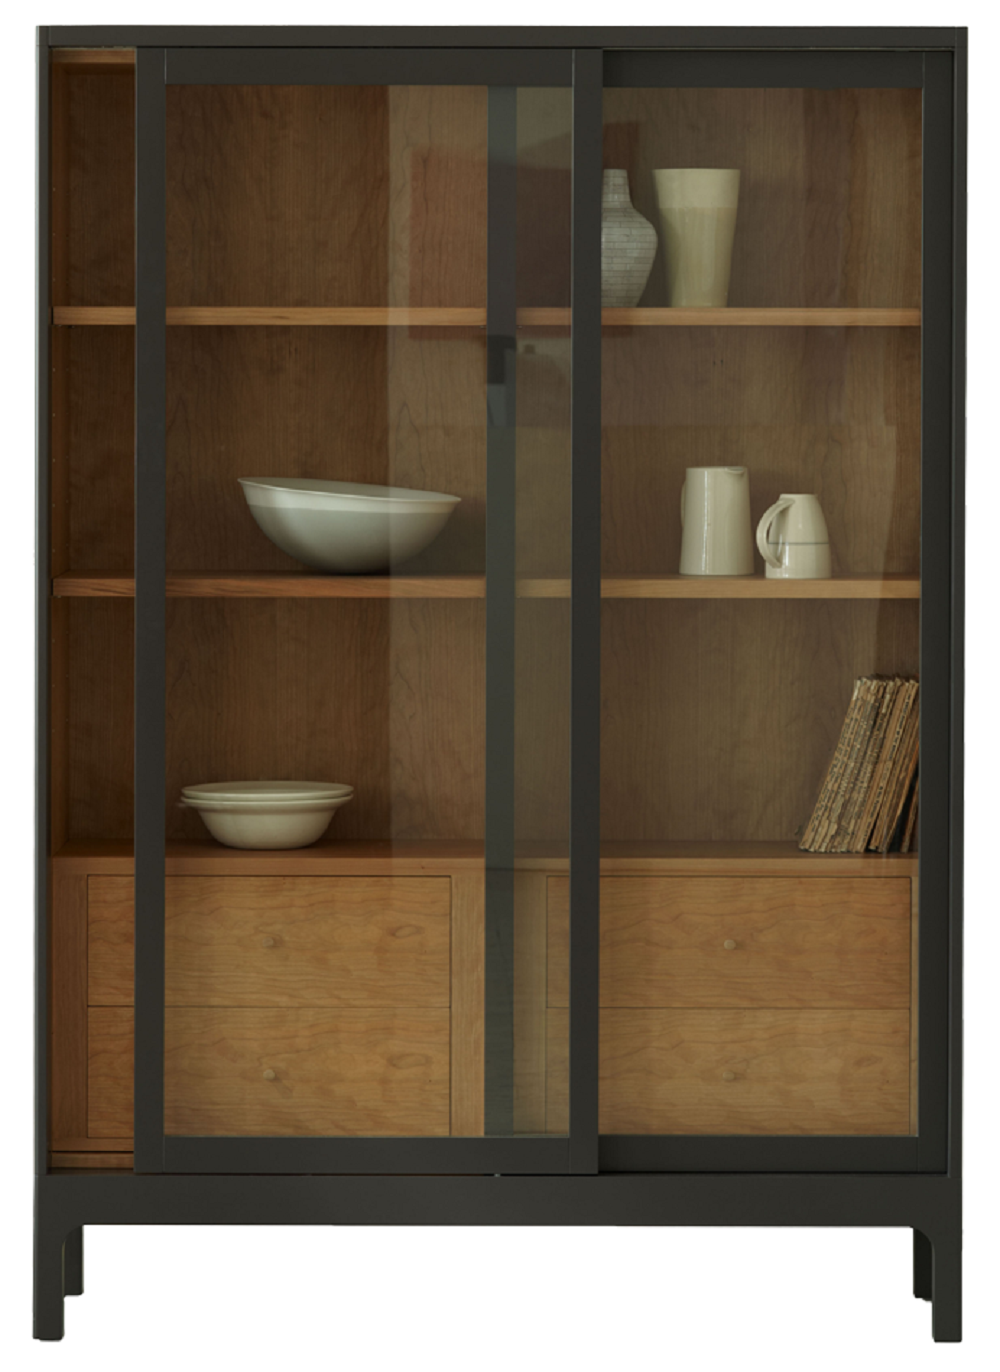 joyce cabinet by russell pinch for the conran shop sliding glass fronted doors and a cherry. Black Bedroom Furniture Sets. Home Design Ideas